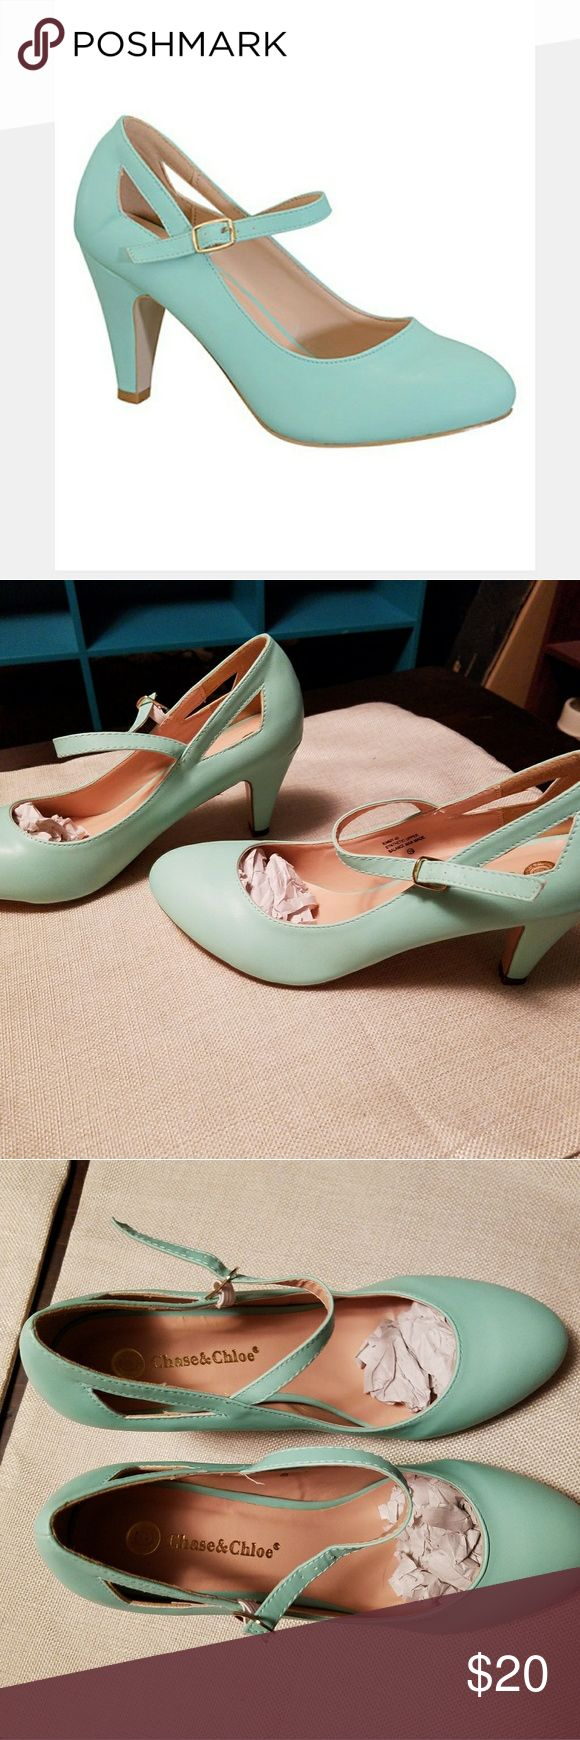 """""""NEW IN BOX"""" MINT PUMPS/HEELS SIZE 10 New in box mint triangle kimmy pumps by Chase & Chloe. Features bold cutouts for a modern twist on the classic mary jane.  3"""" heel Buckle closure Size 10 Never worn, new in box Chase & Chloe  Shoes Heels"""